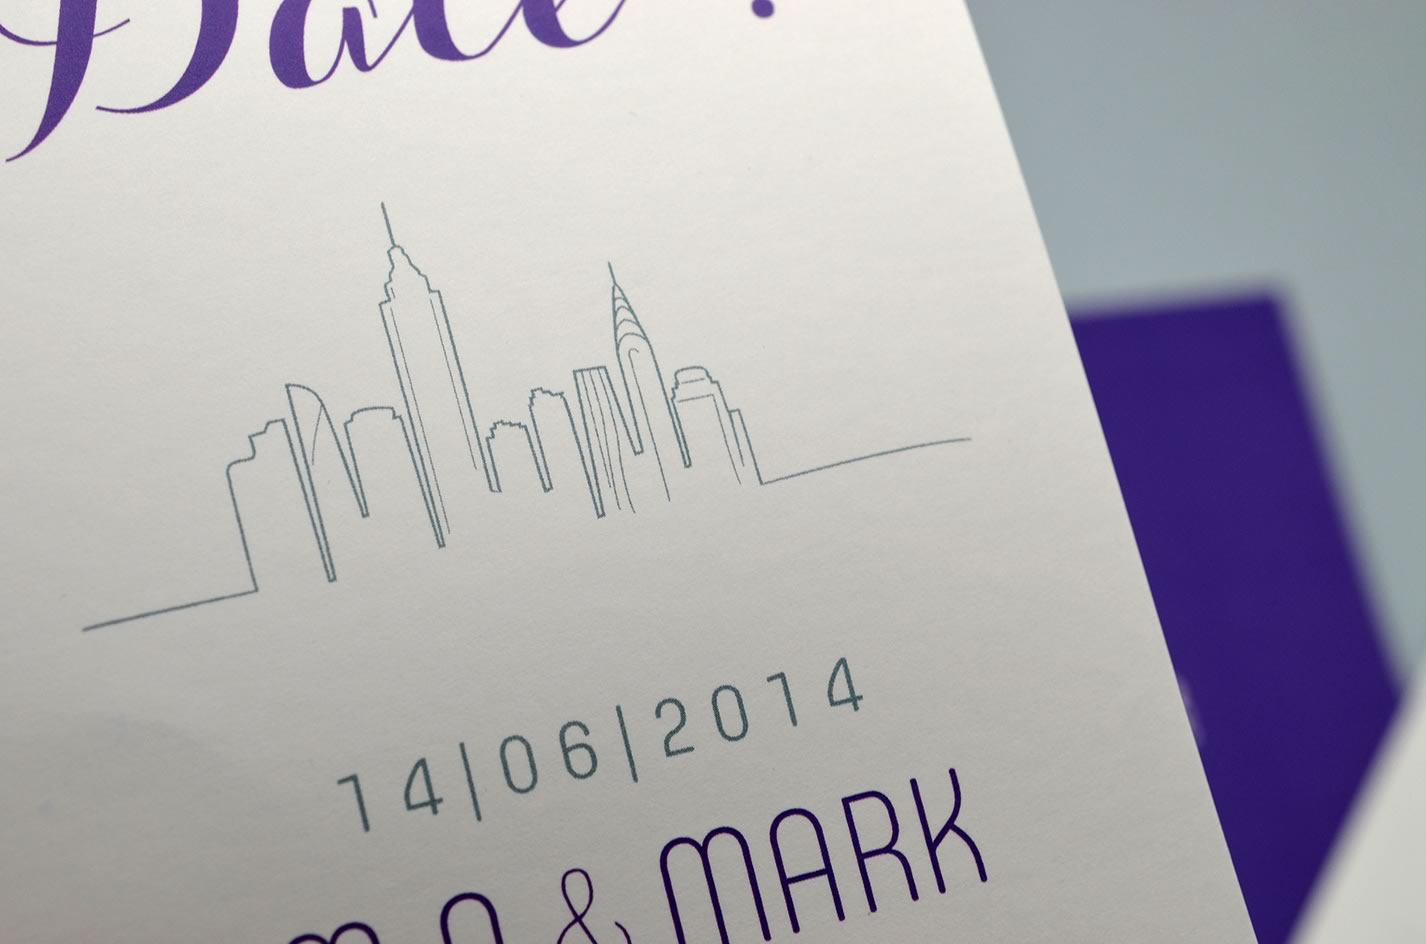 Save the date mariage voyage sur mesure new york design violet skyline latelierdelsa